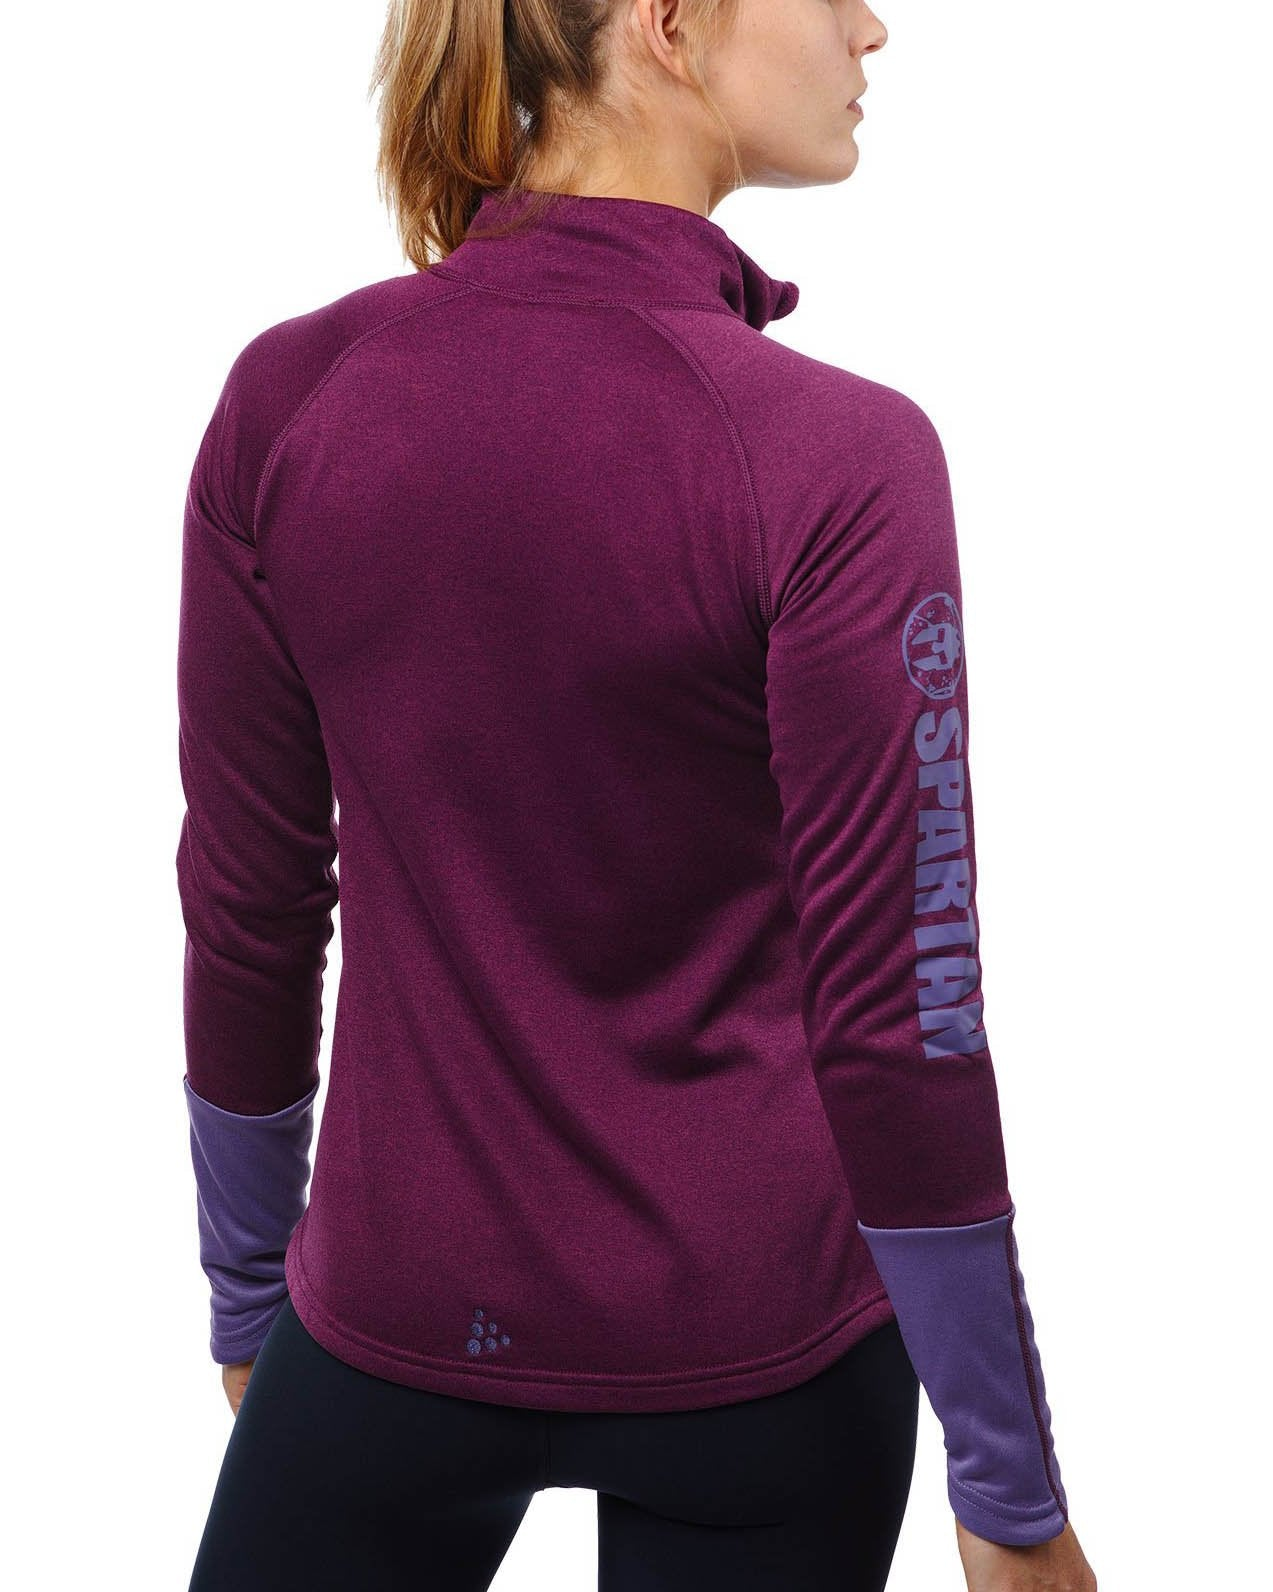 SPARTAN by CRAFT Spark Pullover - Women's